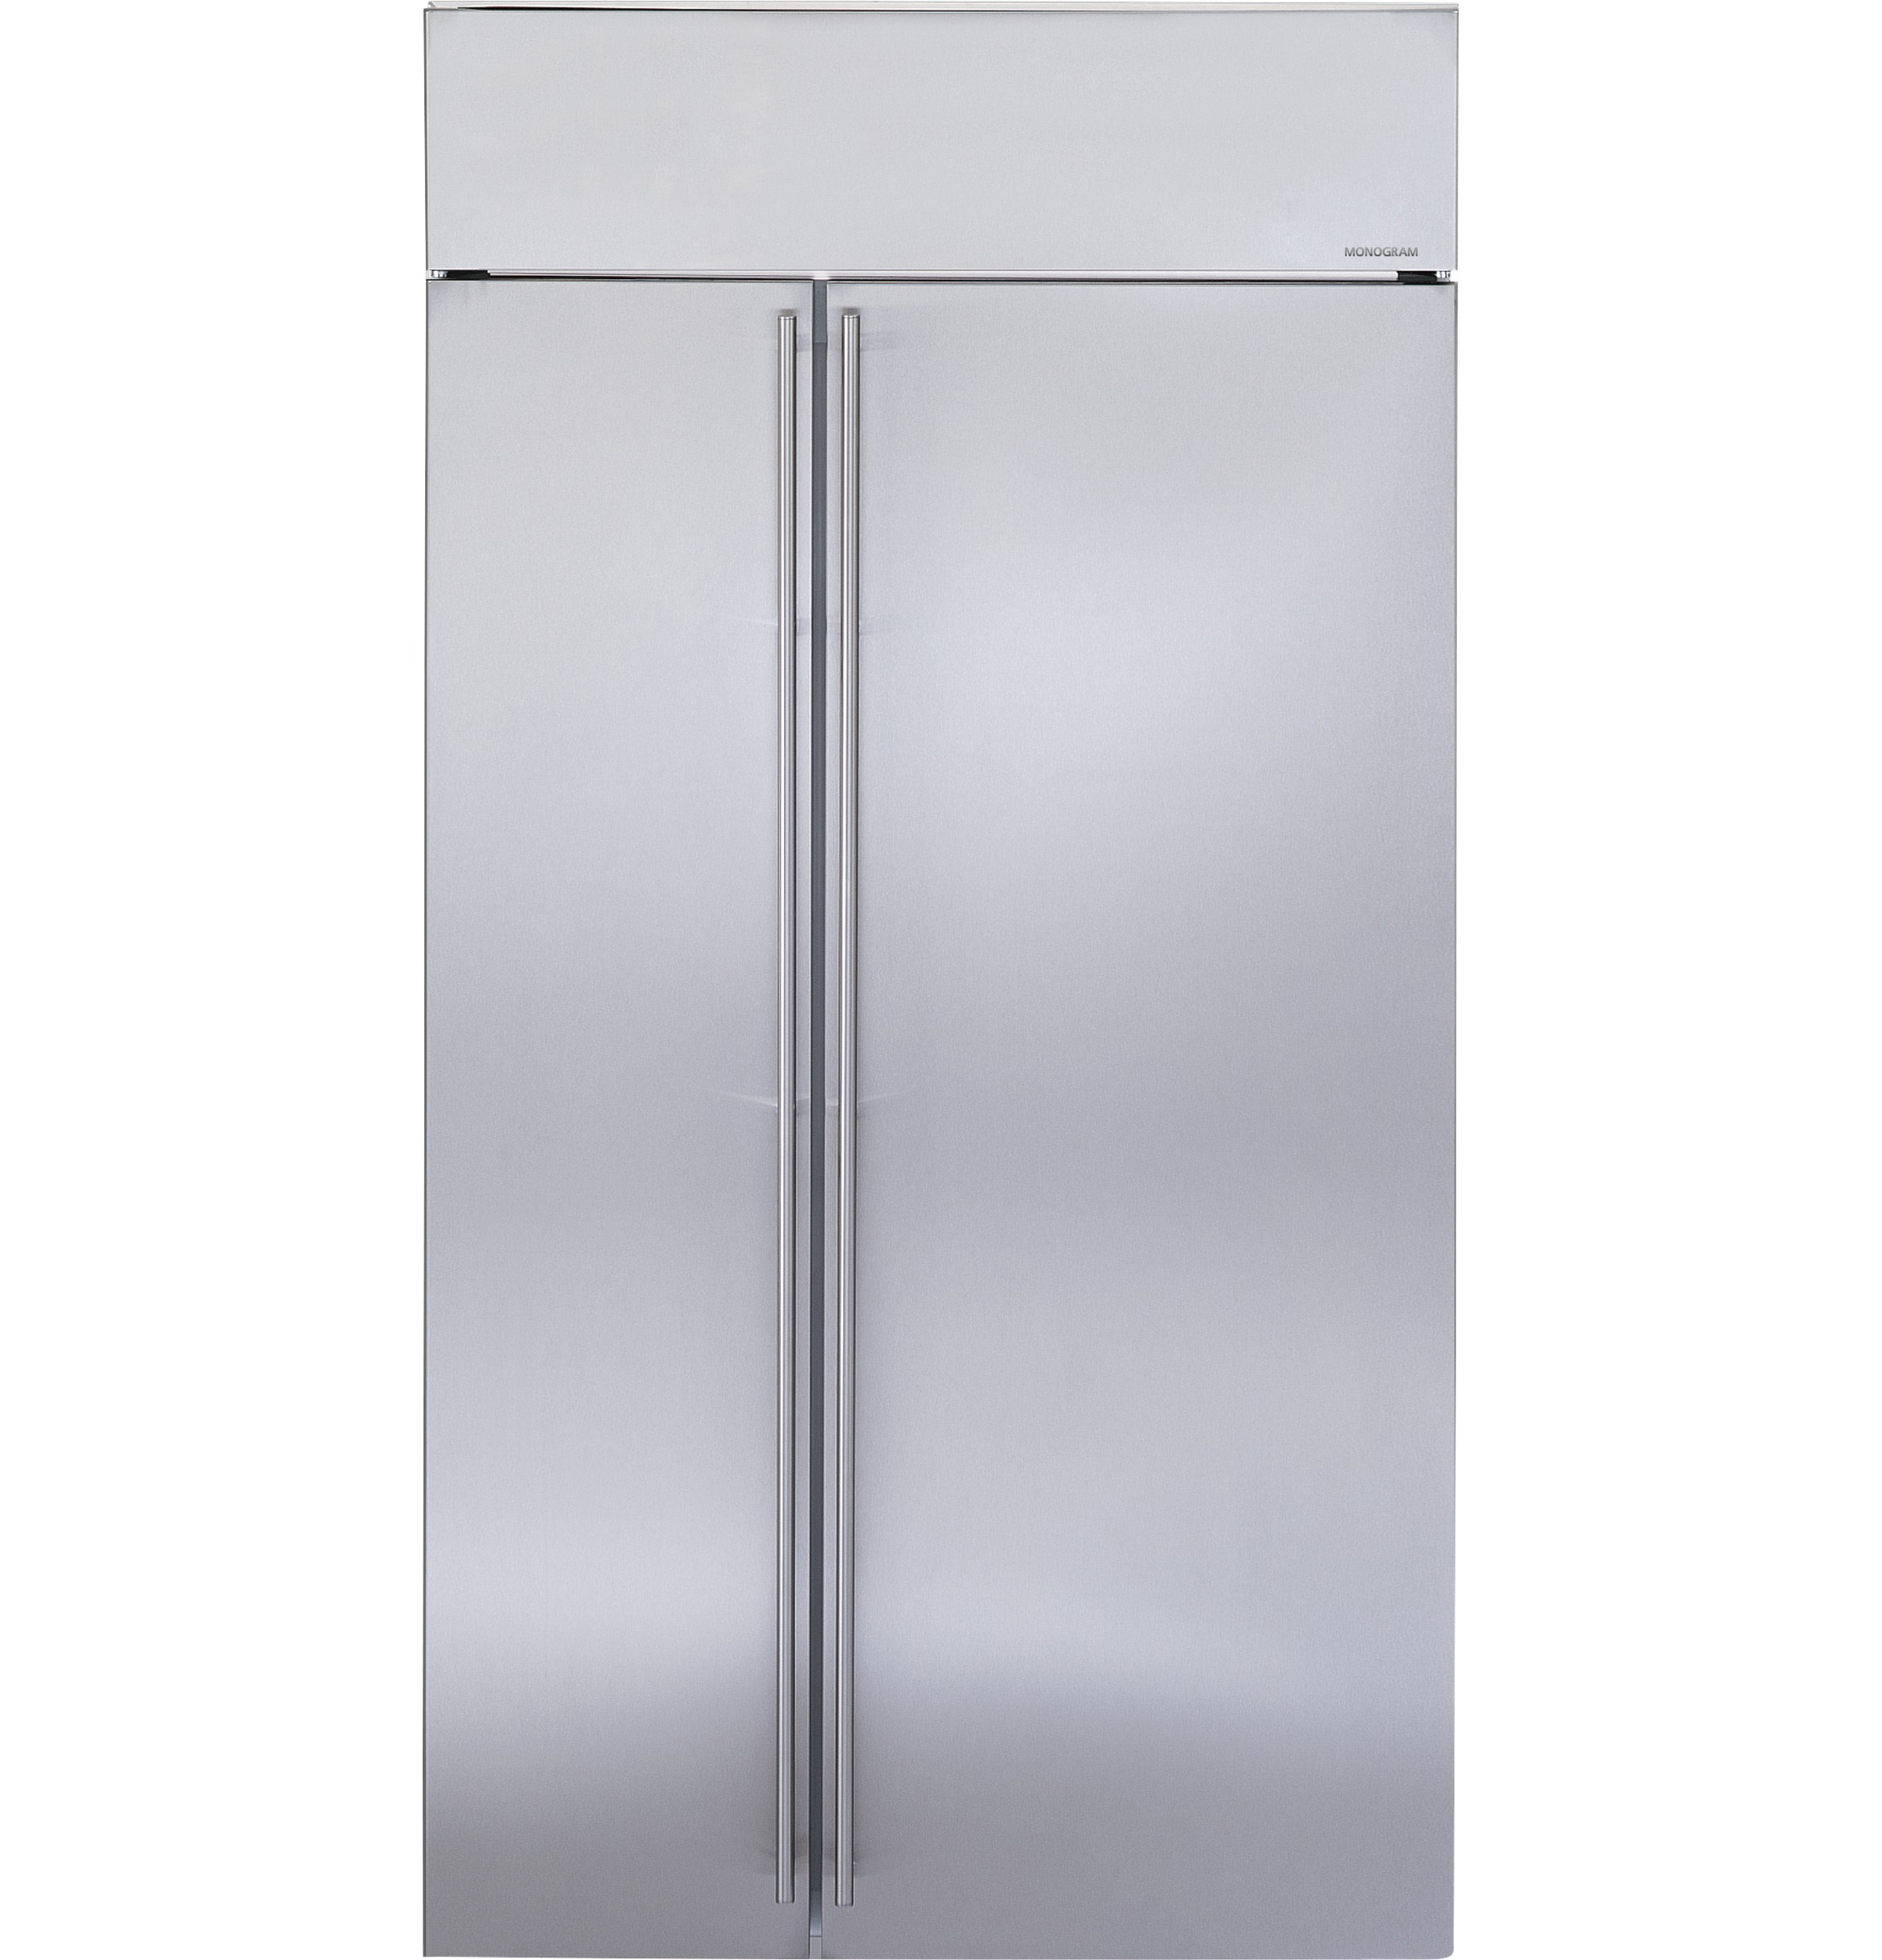 "Monogram Monogram 42"" Built-In Side-by-Side Refrigerator"